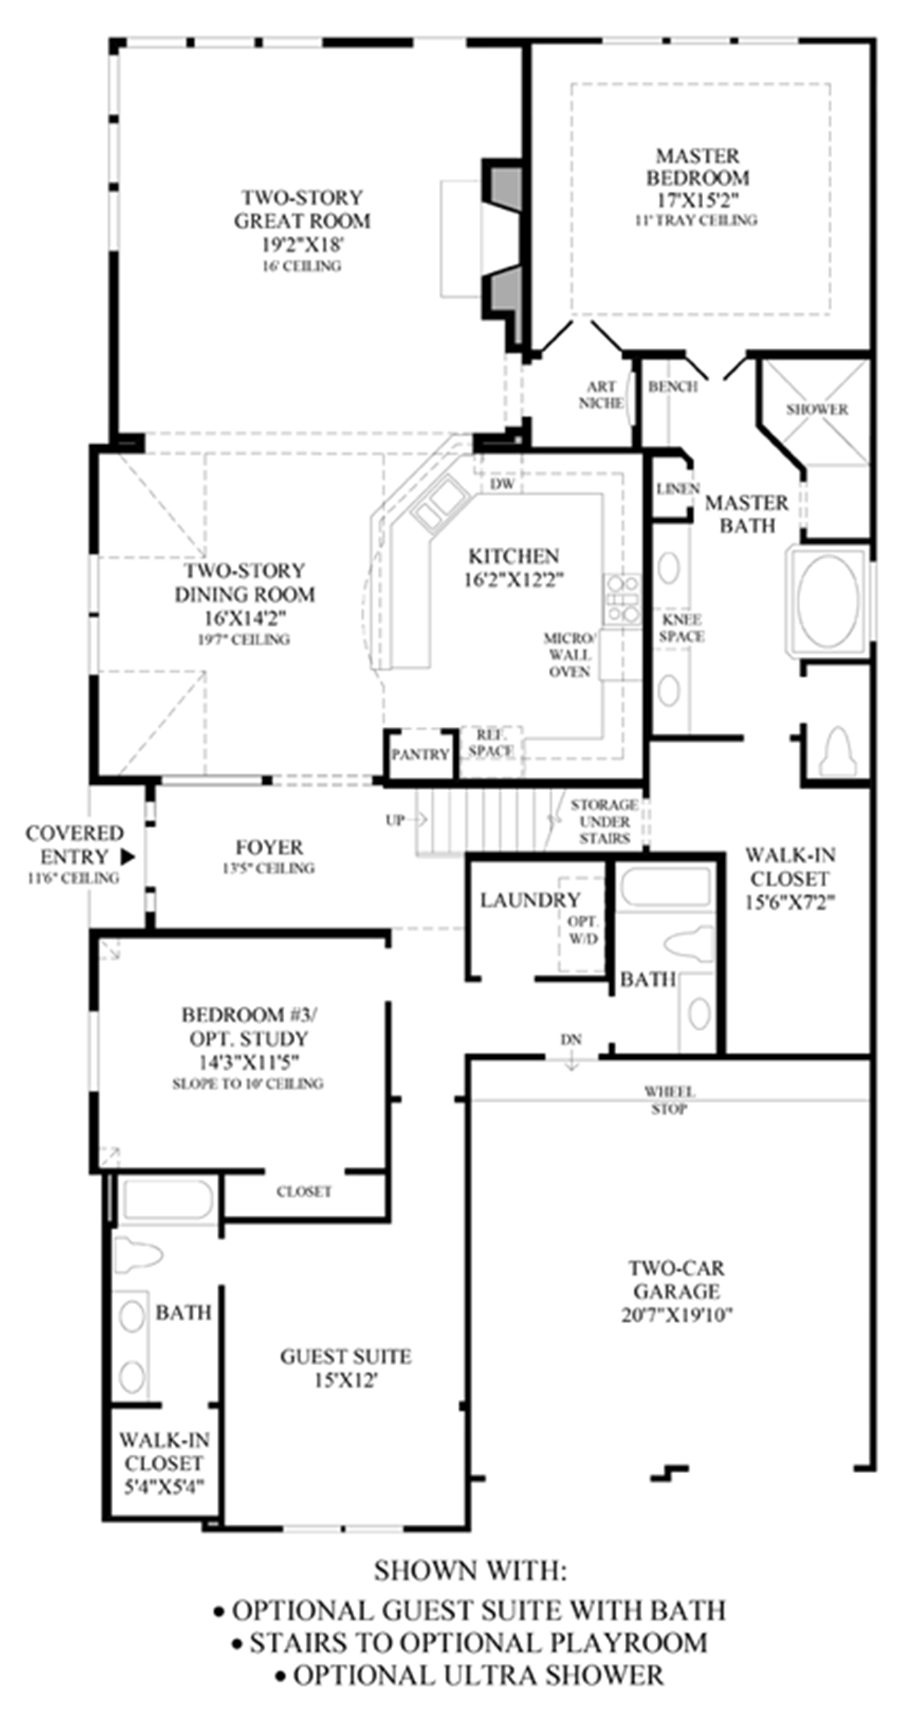 Optional Guest Suite with Bath/Stairs/Ultra Shower Floor Plan